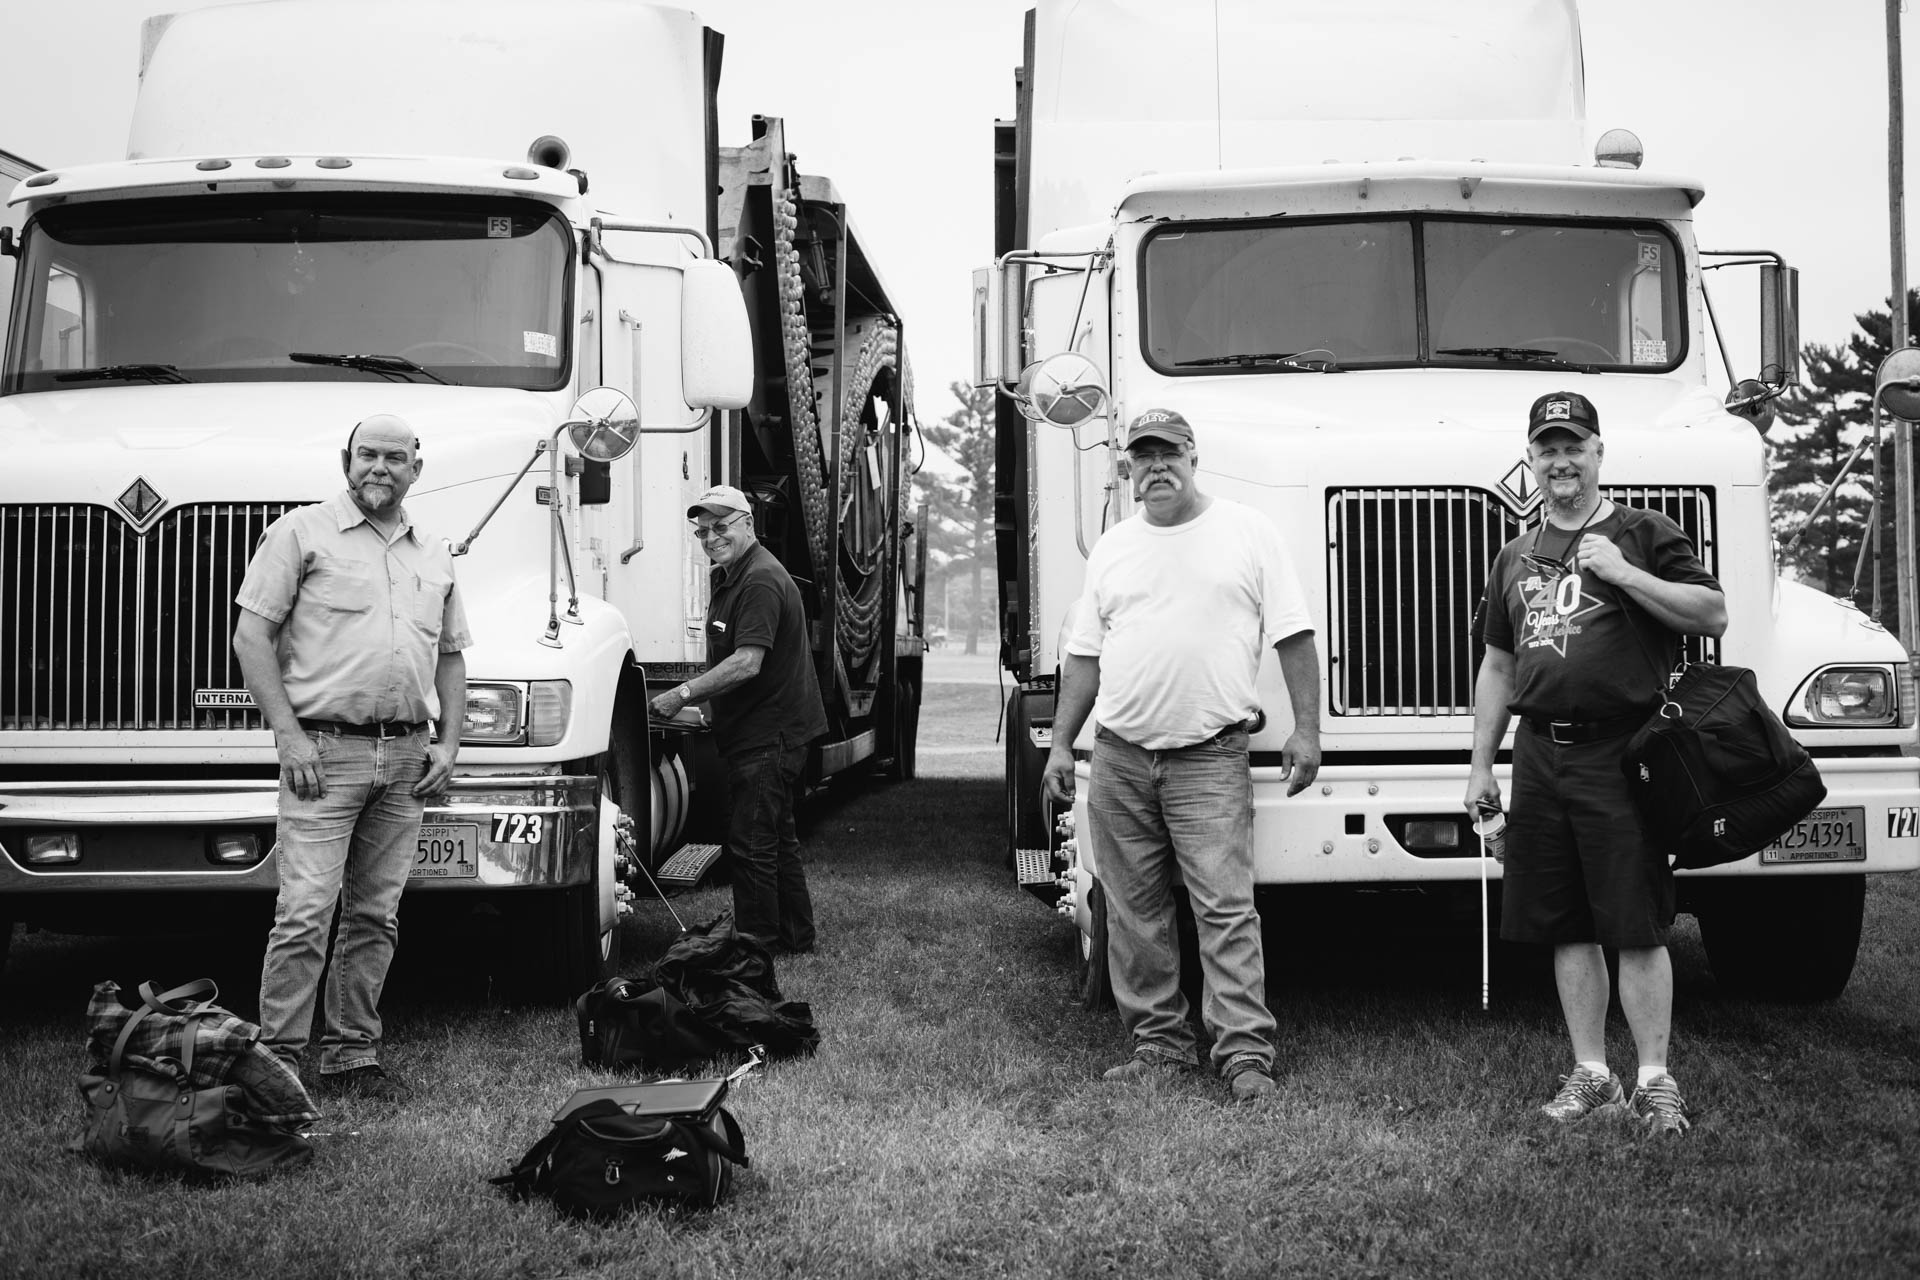 northern-wisconsin-state-fair-carnival-semi-truck-drivers-chippewa-falls-wi-6287